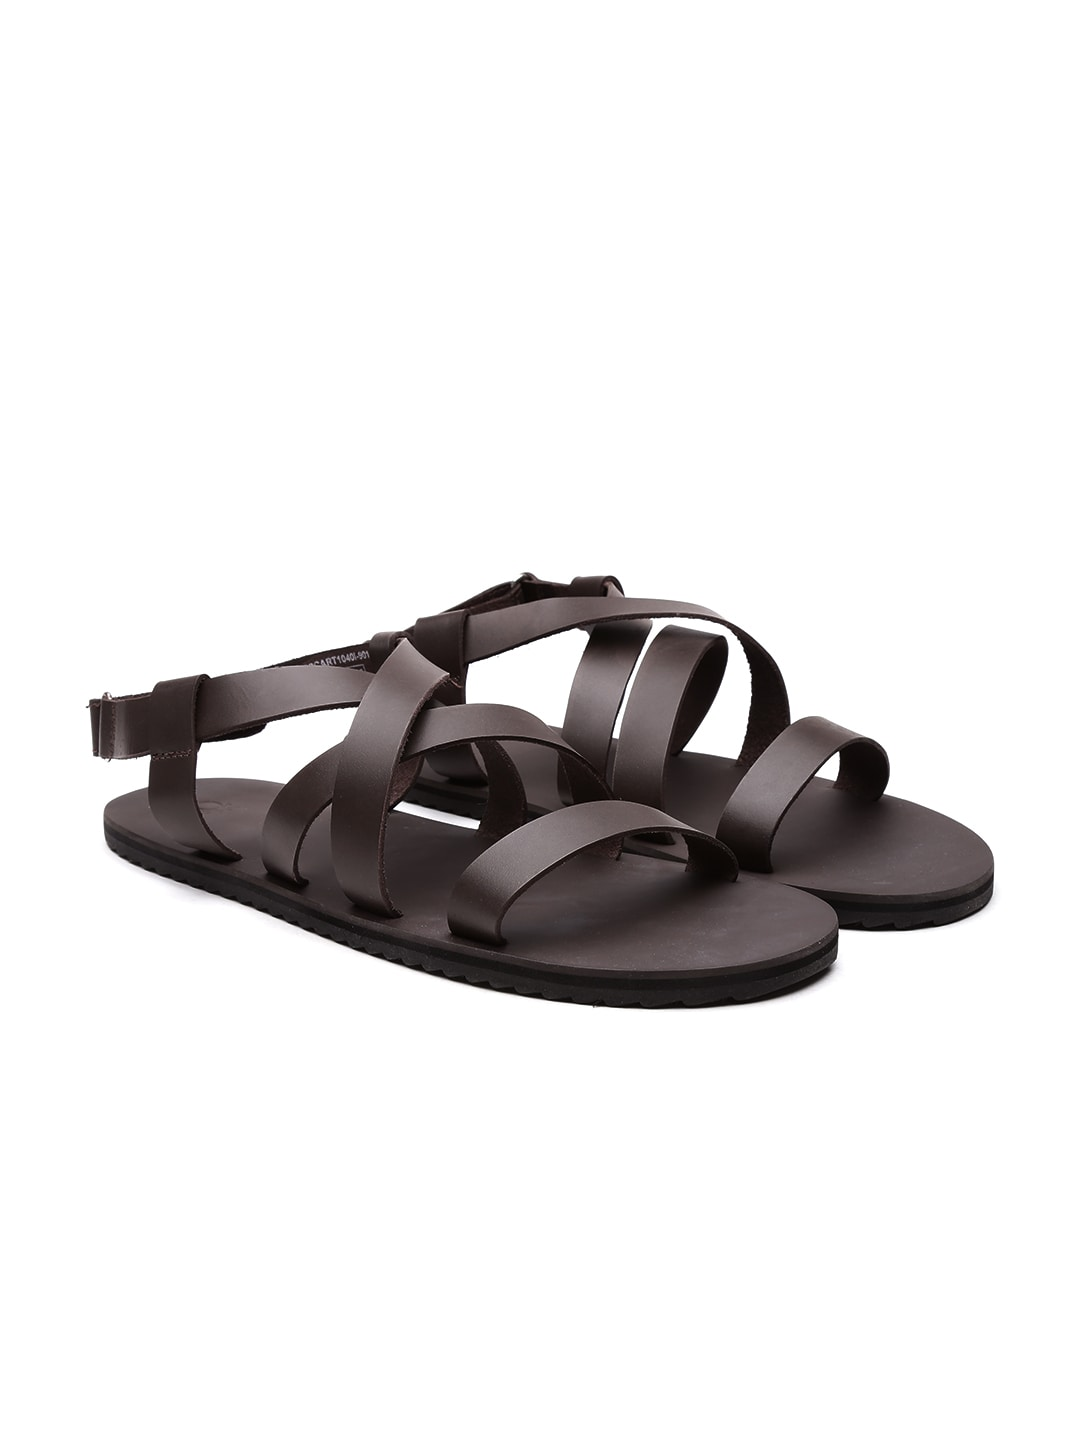 Sandal Benetton United Colors Brown Of Buy XZukOPiT